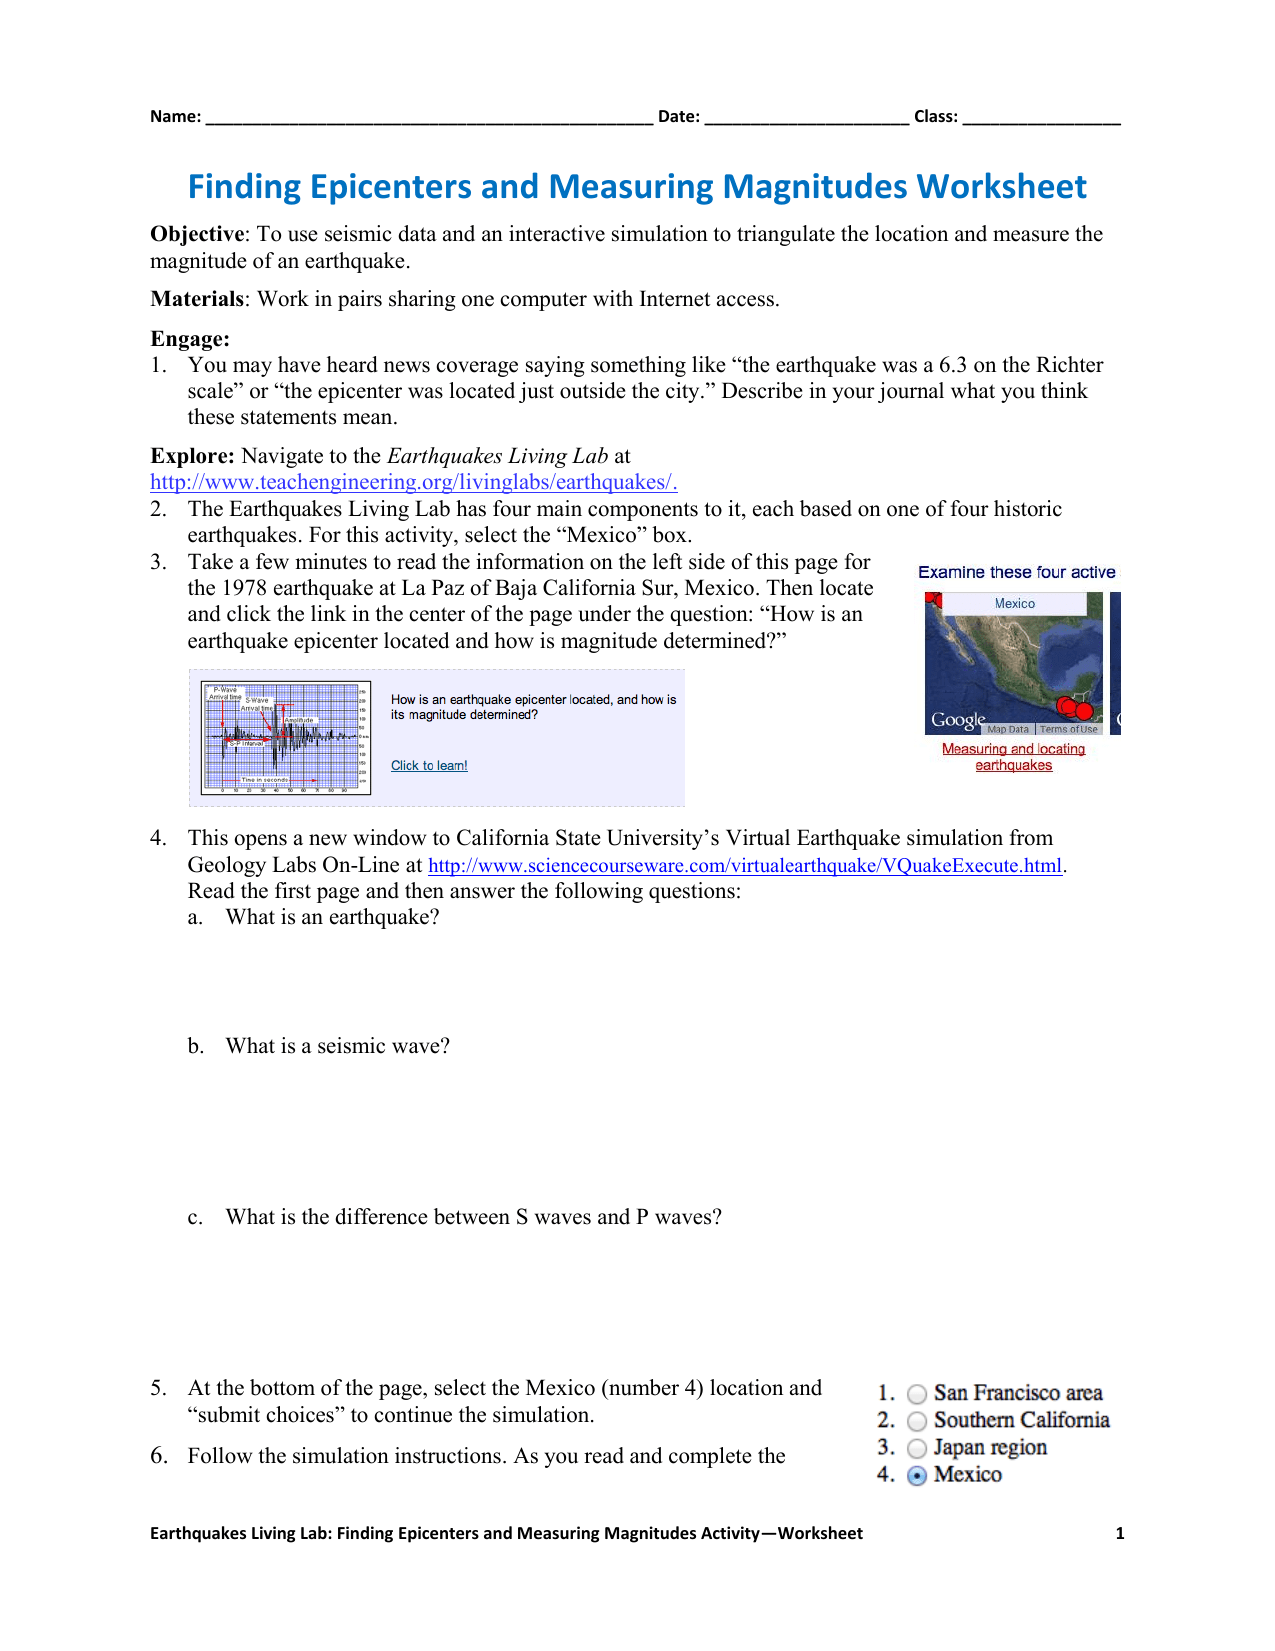 Finding Epicenters And Measuring Magnitudes Worksheet